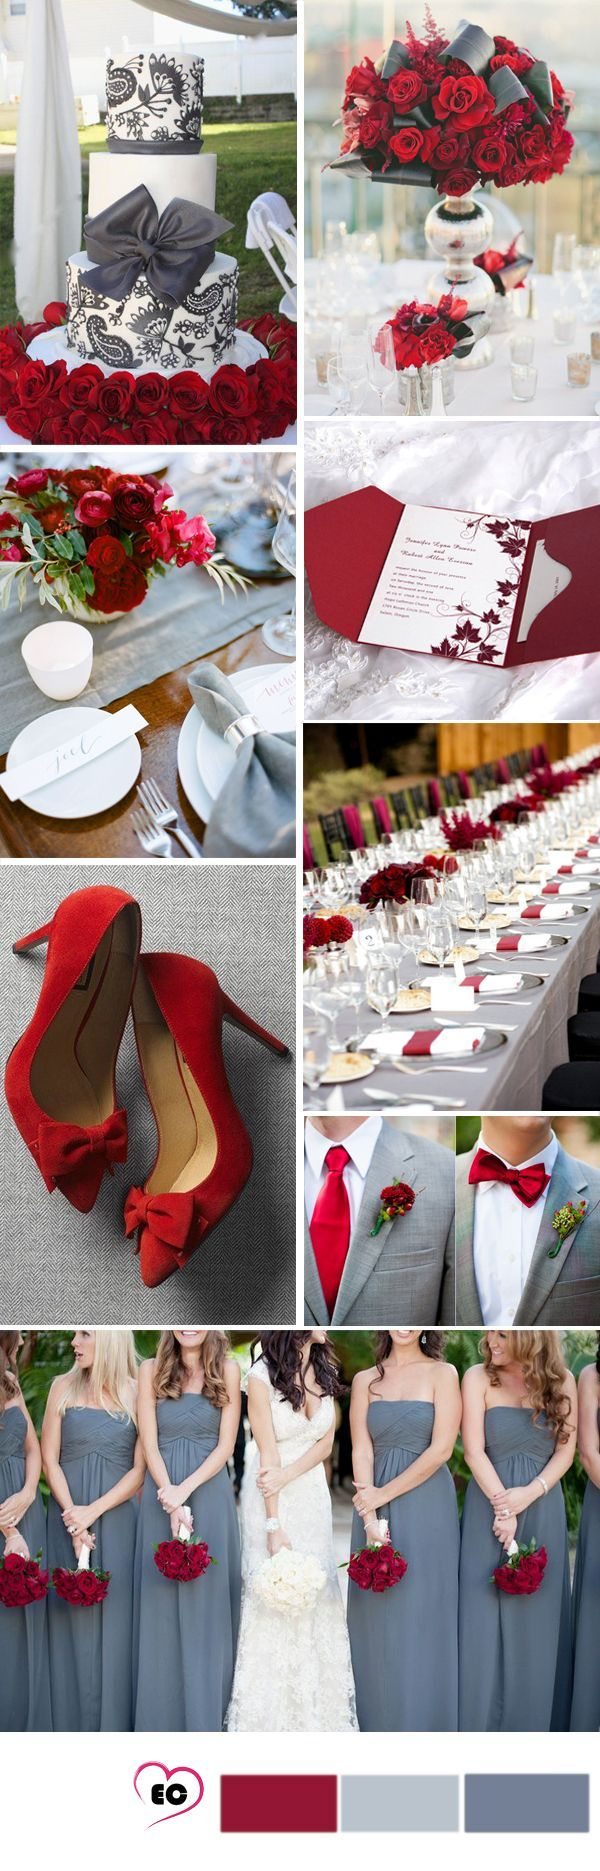 awesome wedding themes ideas best photos